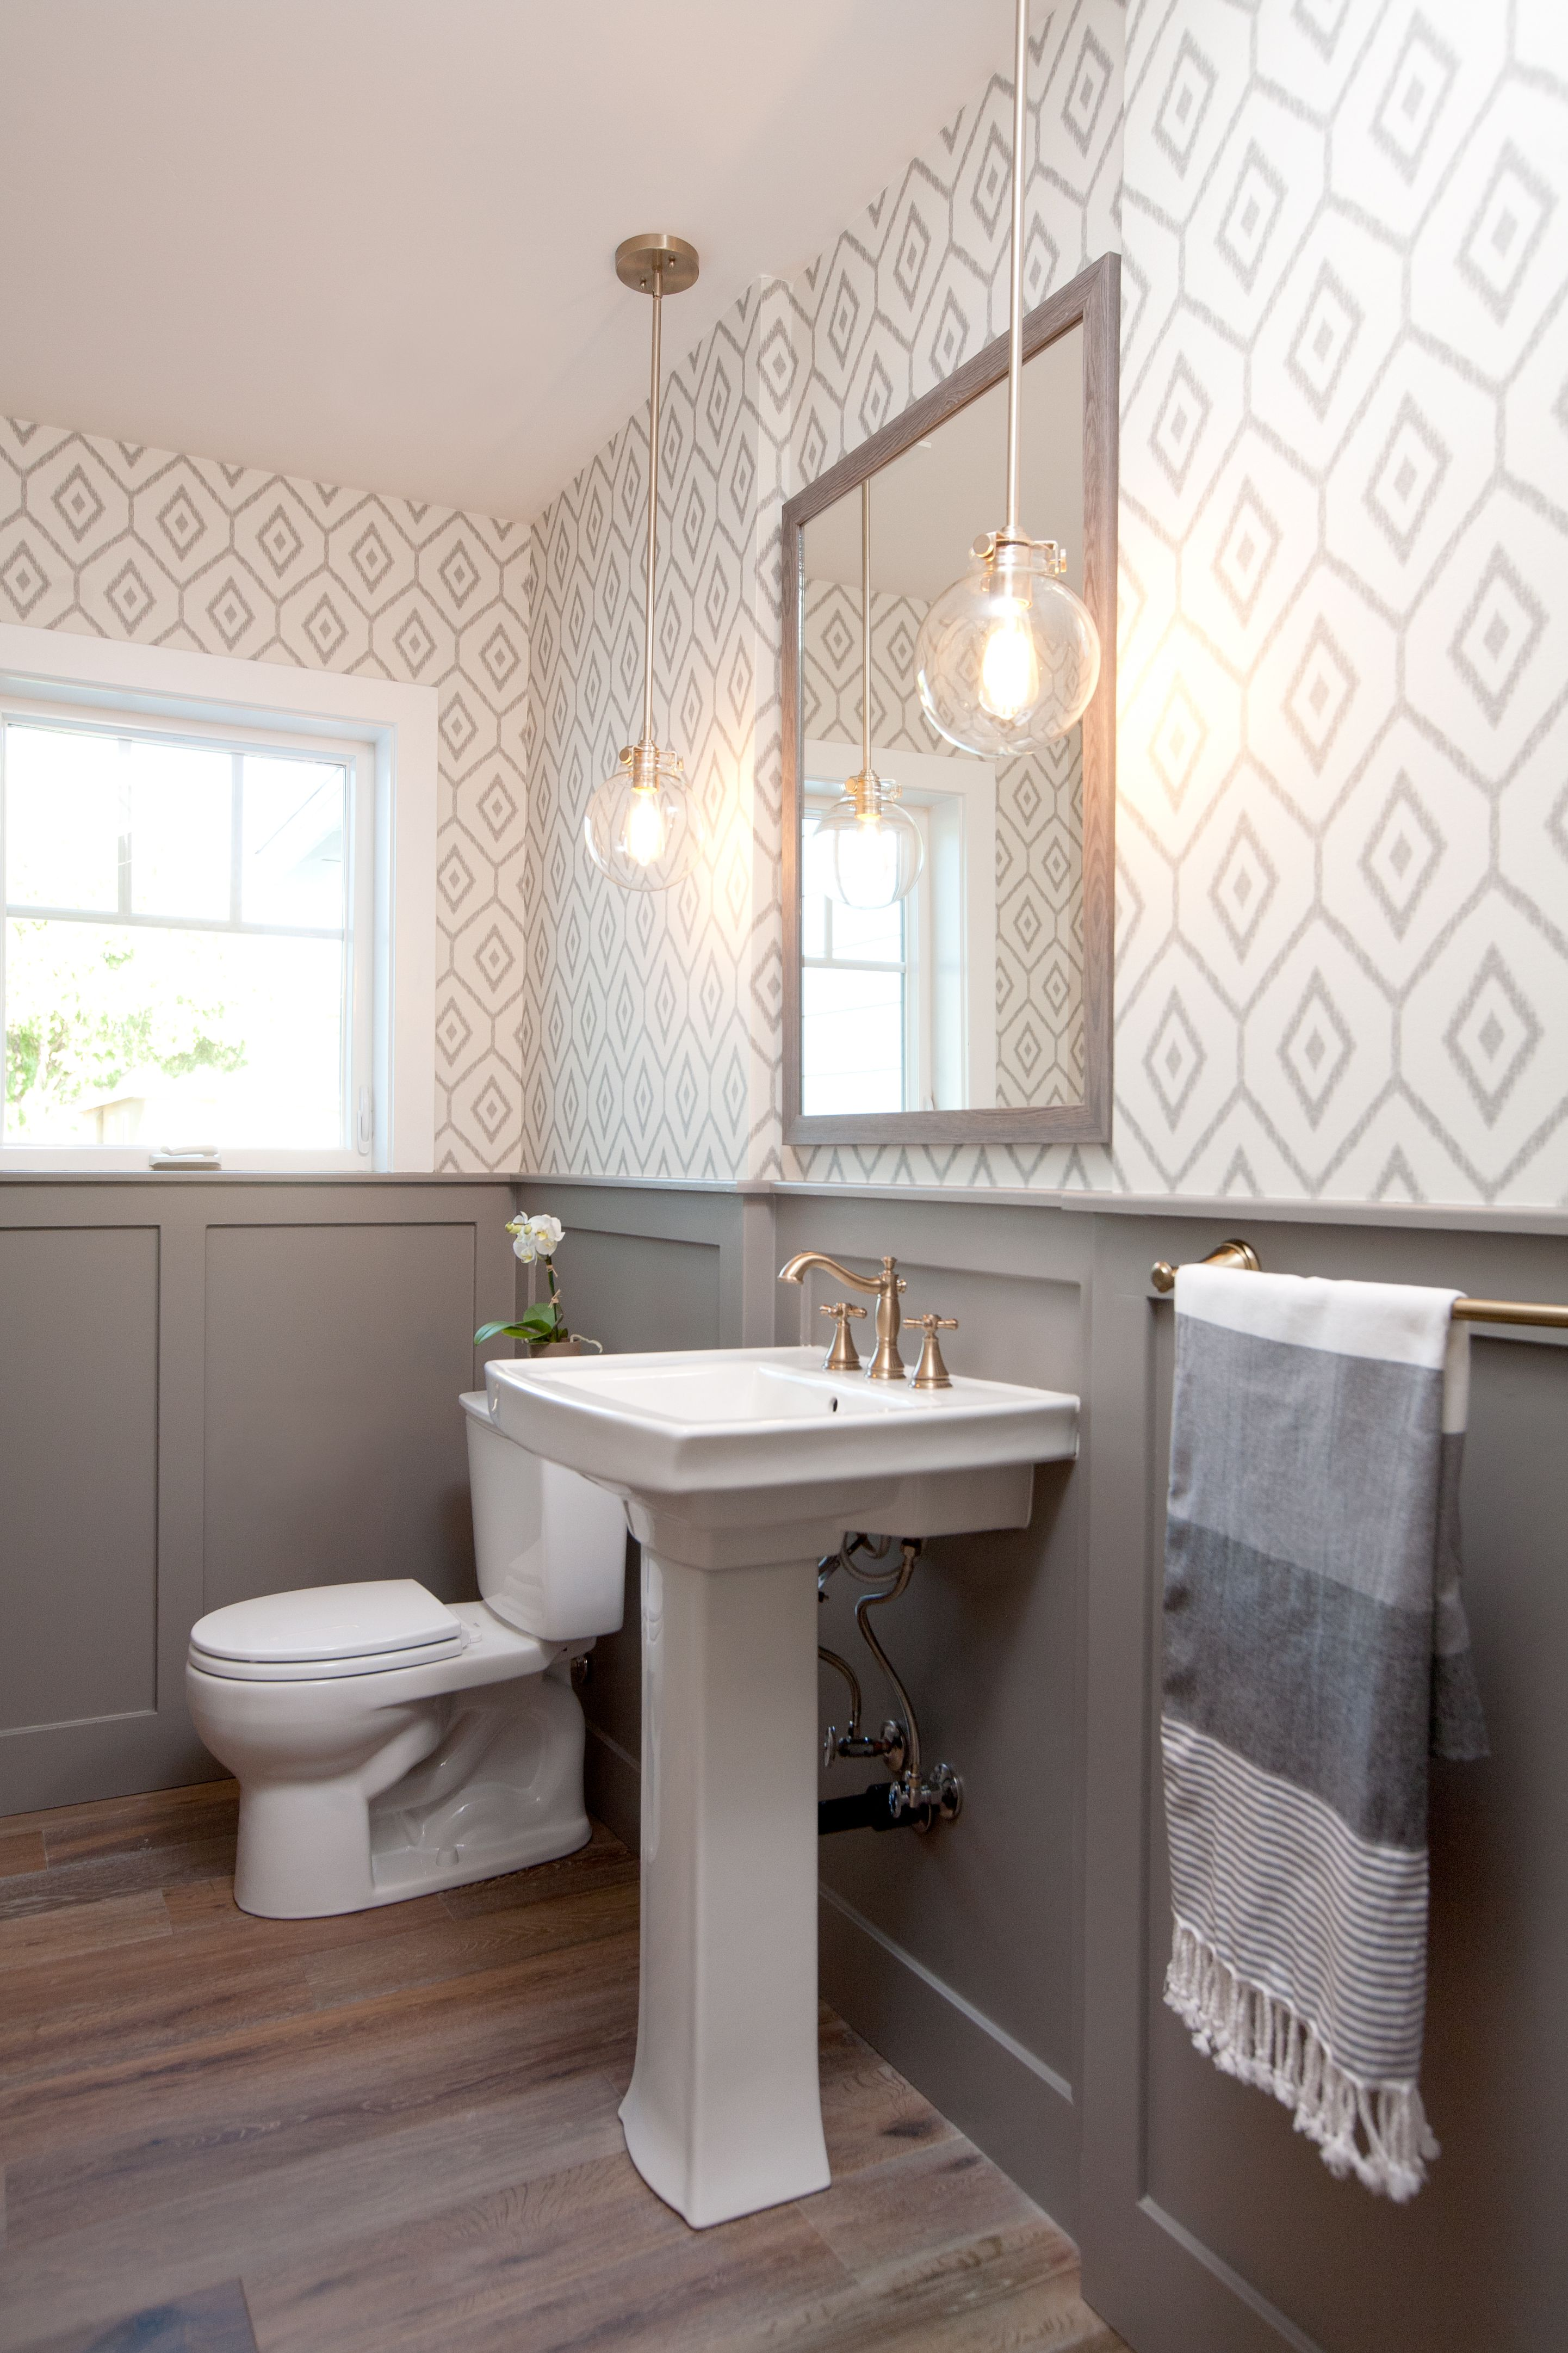 10 Beautiful Half Bathroom Ideas For Your Home